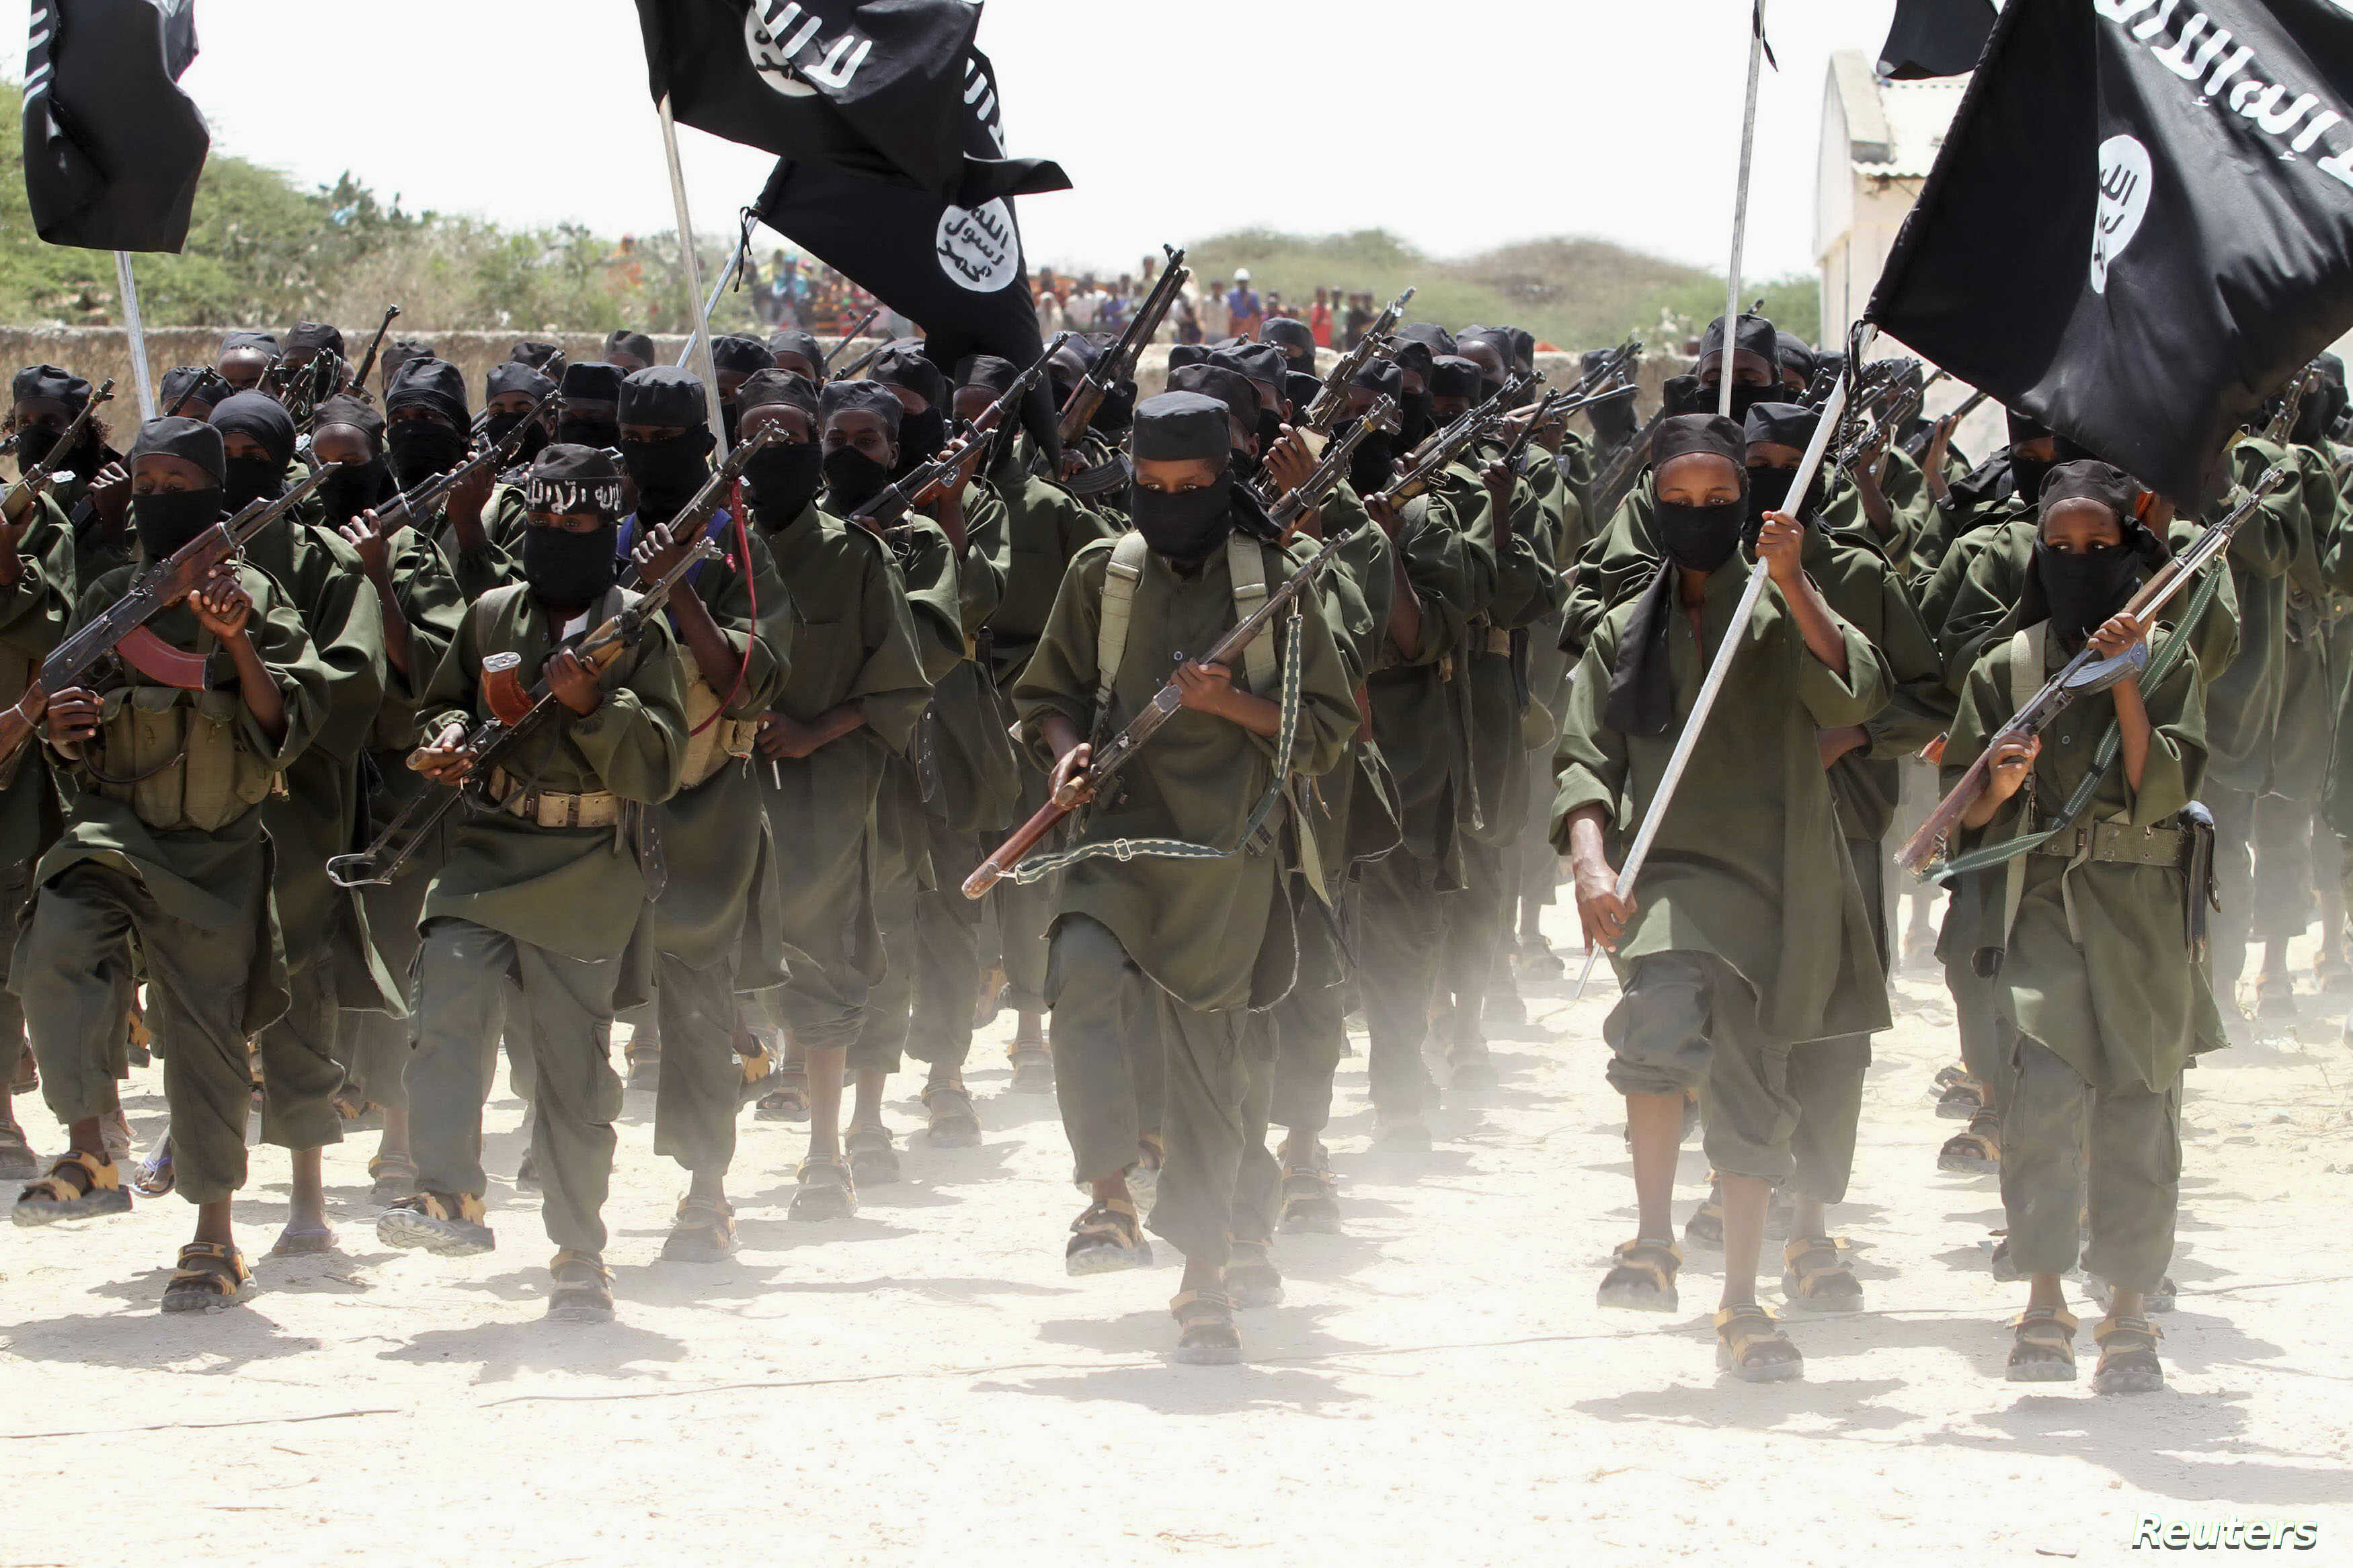 FILE - Recruits belonging to Somalia's al Shabaab rebel group march during a parade at a training base in 2011.